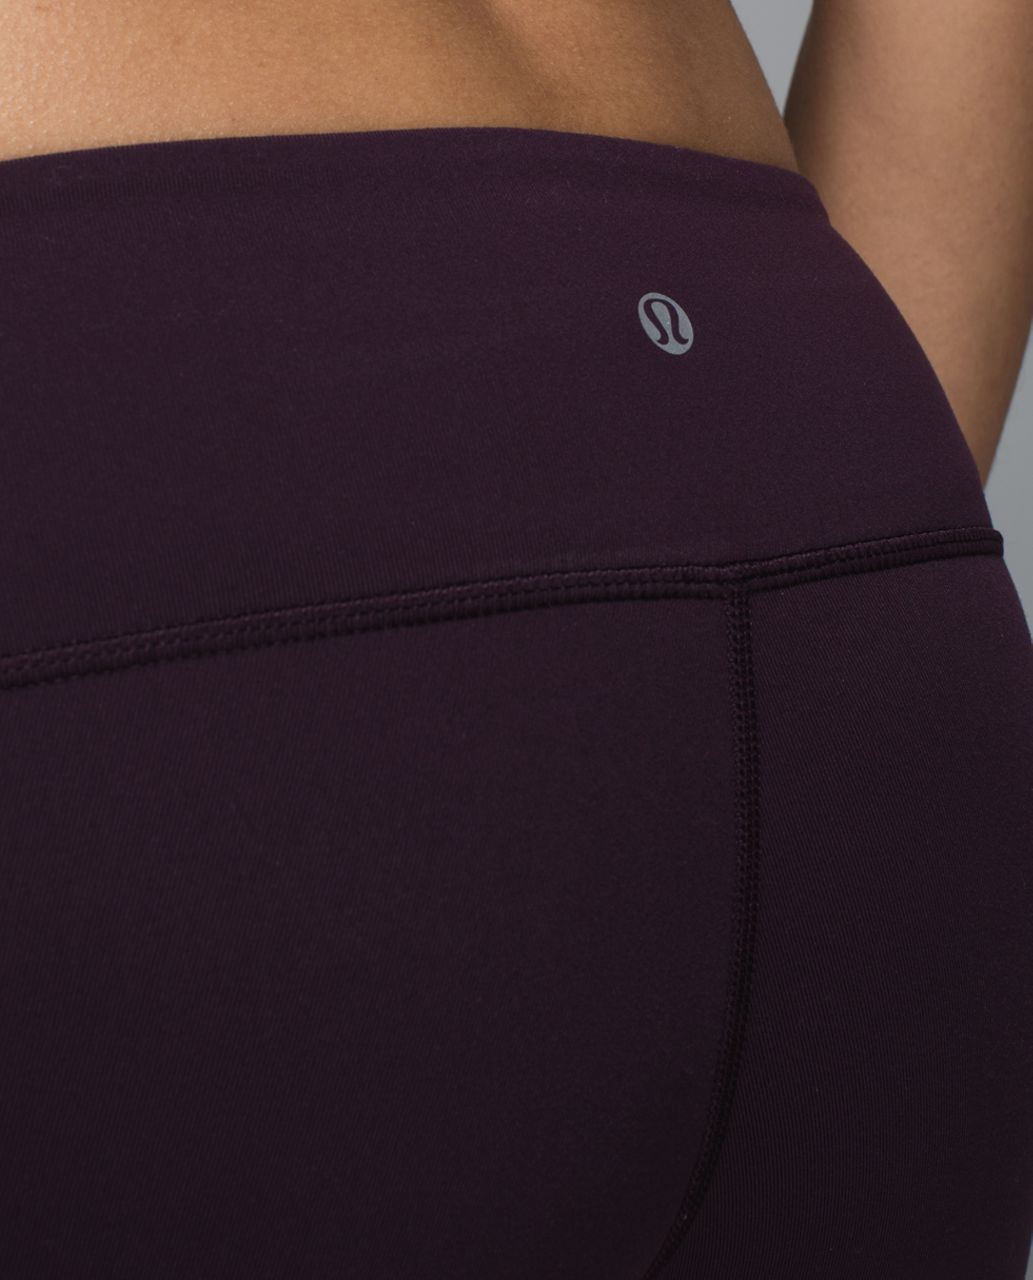 Lululemon Wunder Under Pant *Full-On Luon - Black Cherry / Star Crushed Black Cherry Black